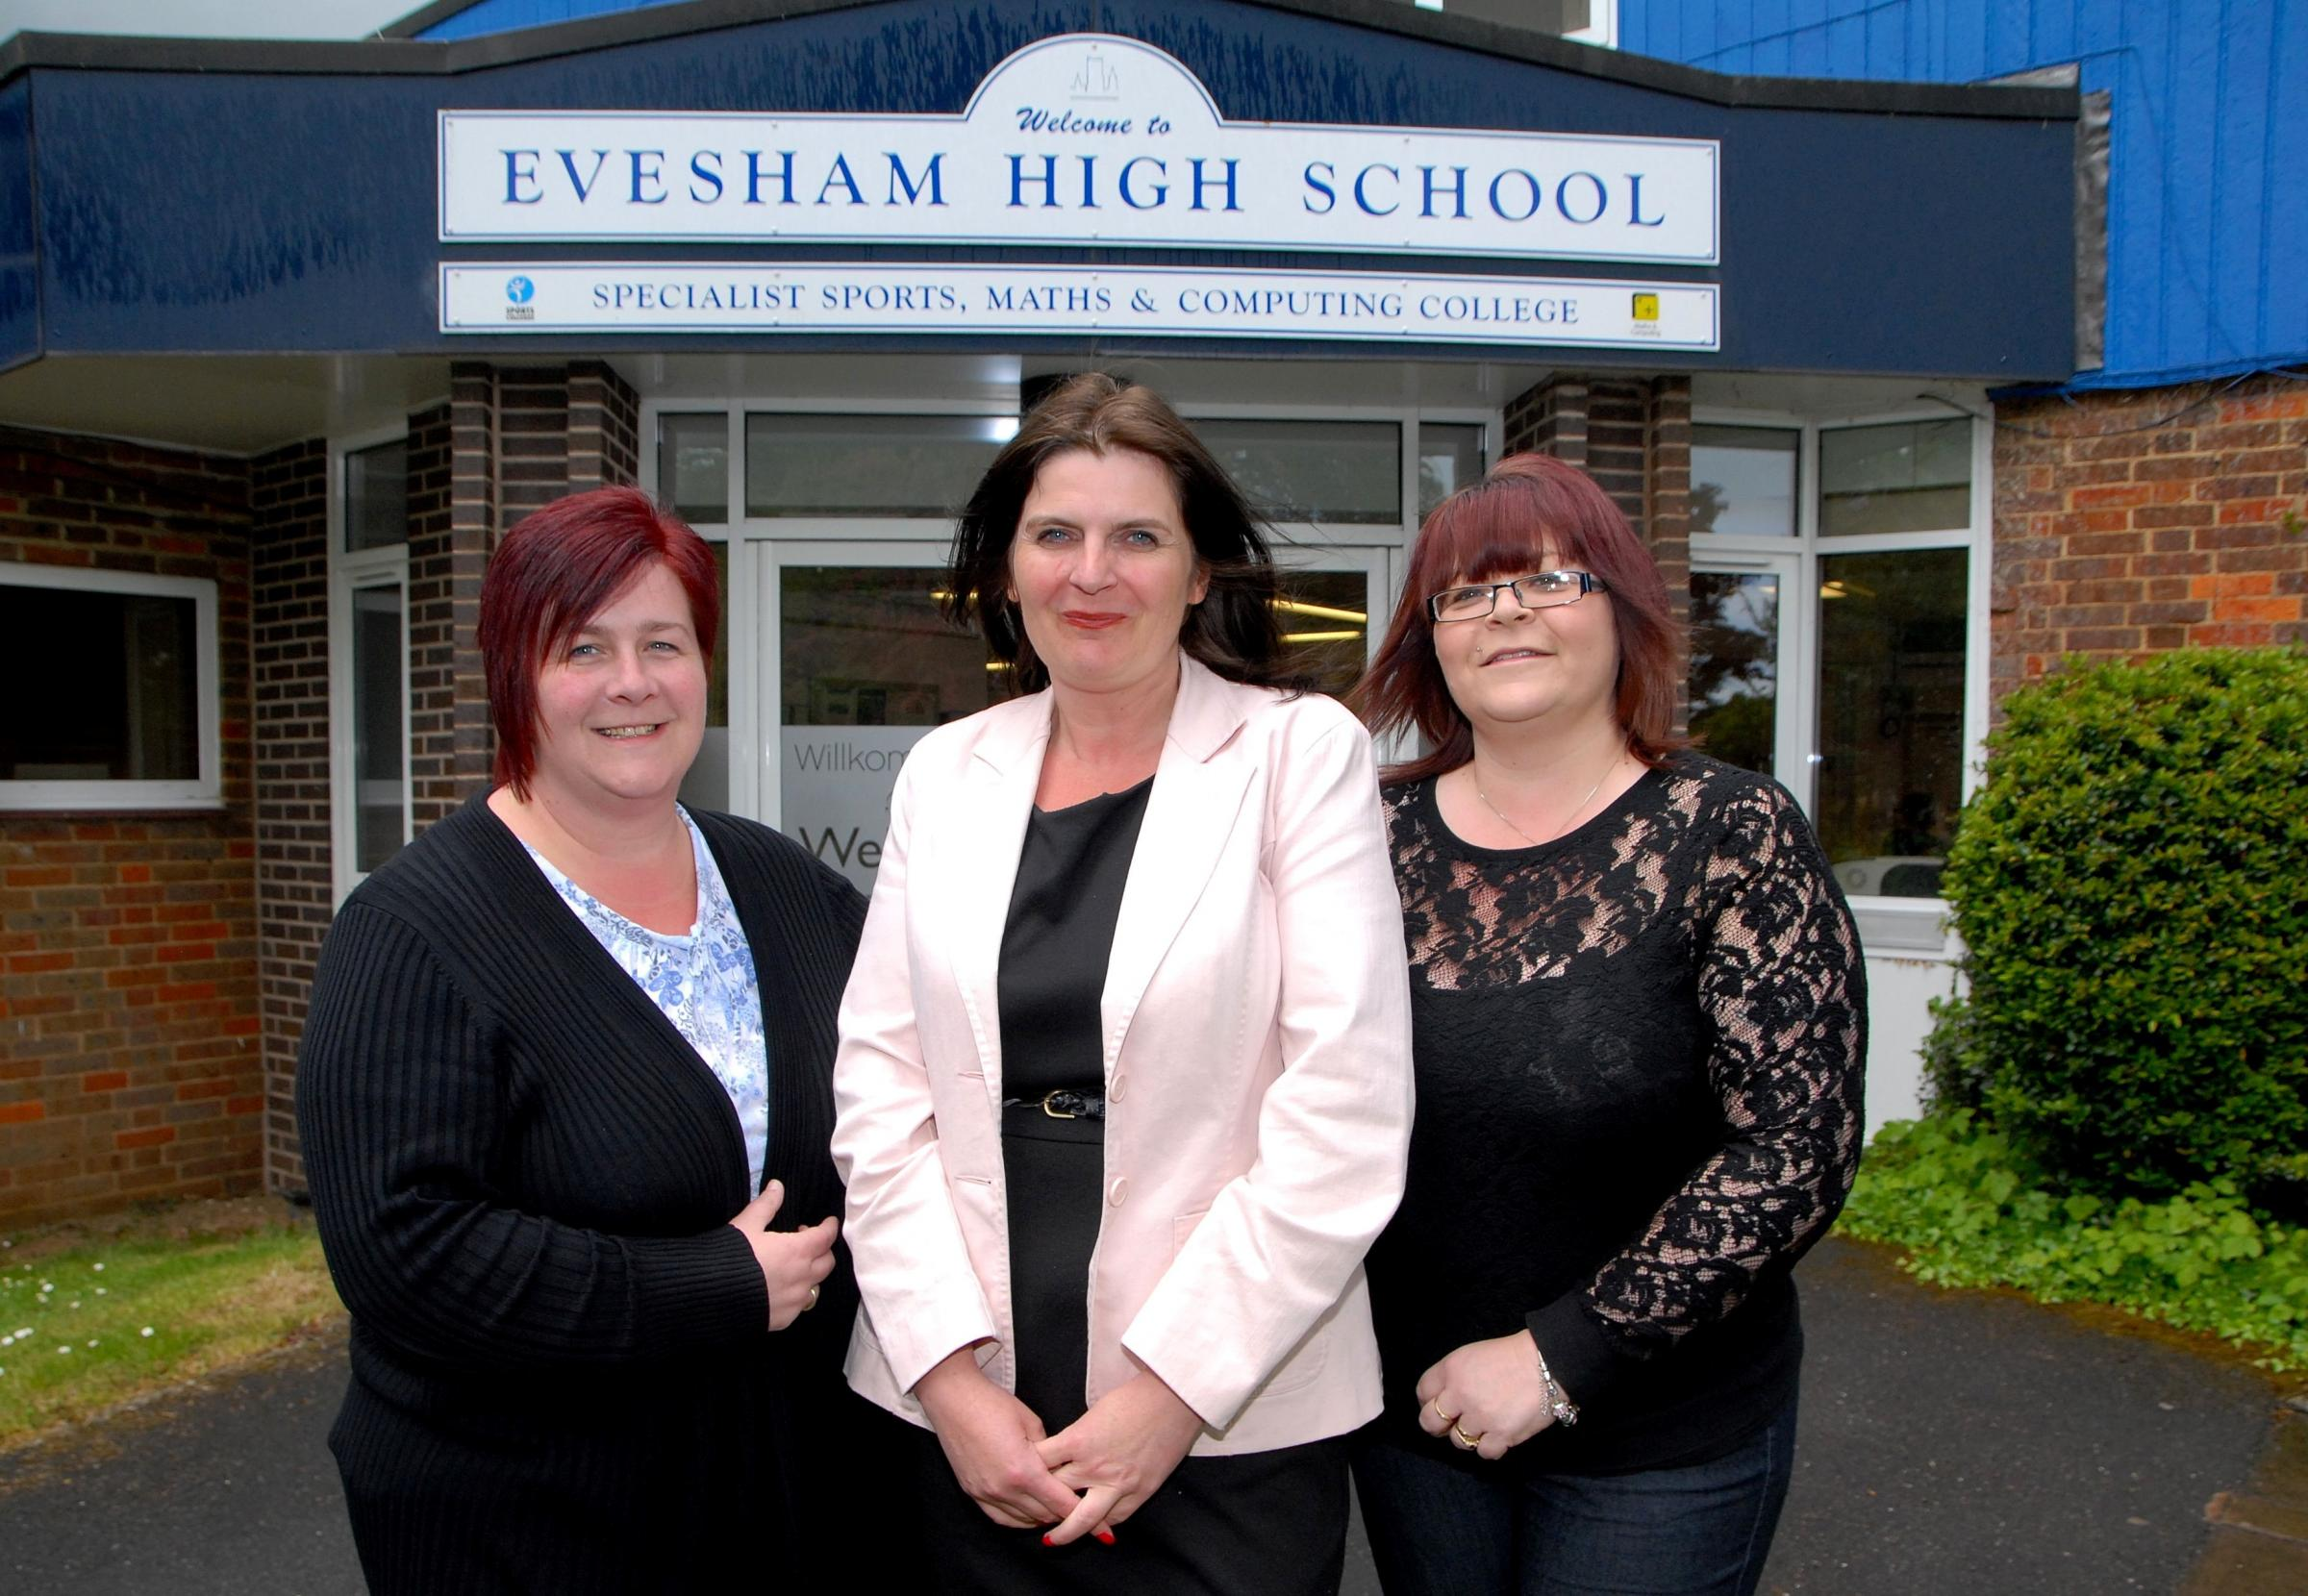 2014596901 Paul Jackson 13.05.14 Evesham From left - Lorna Waters nee Southern, Elaine Clements nee Cole and Amanda Mumford nee Kinchin, are organising a reunion for Evesham High School leaver from 1987. (6183147)